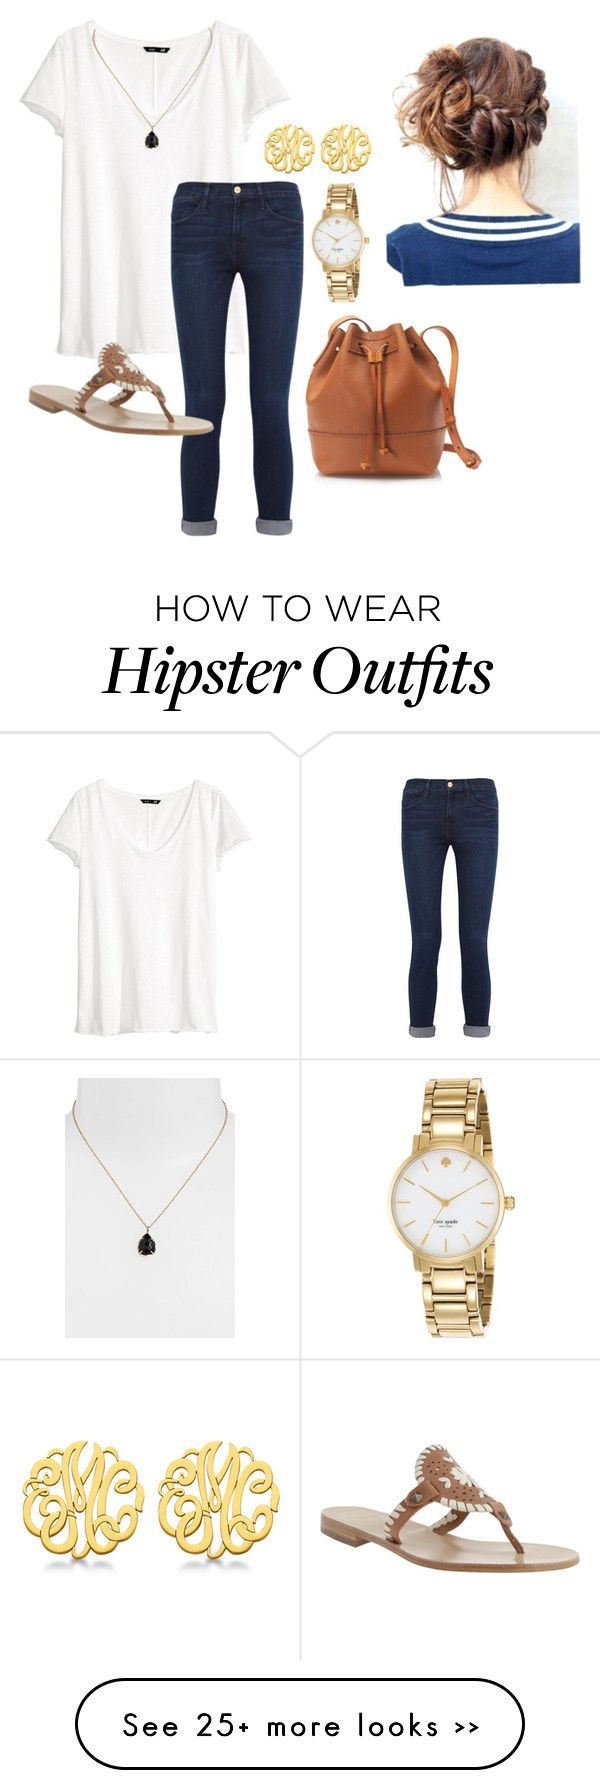 """the bohemian, preppy, hipster(ish) look- Emily"" by southern-prep-girls on Polyvore"